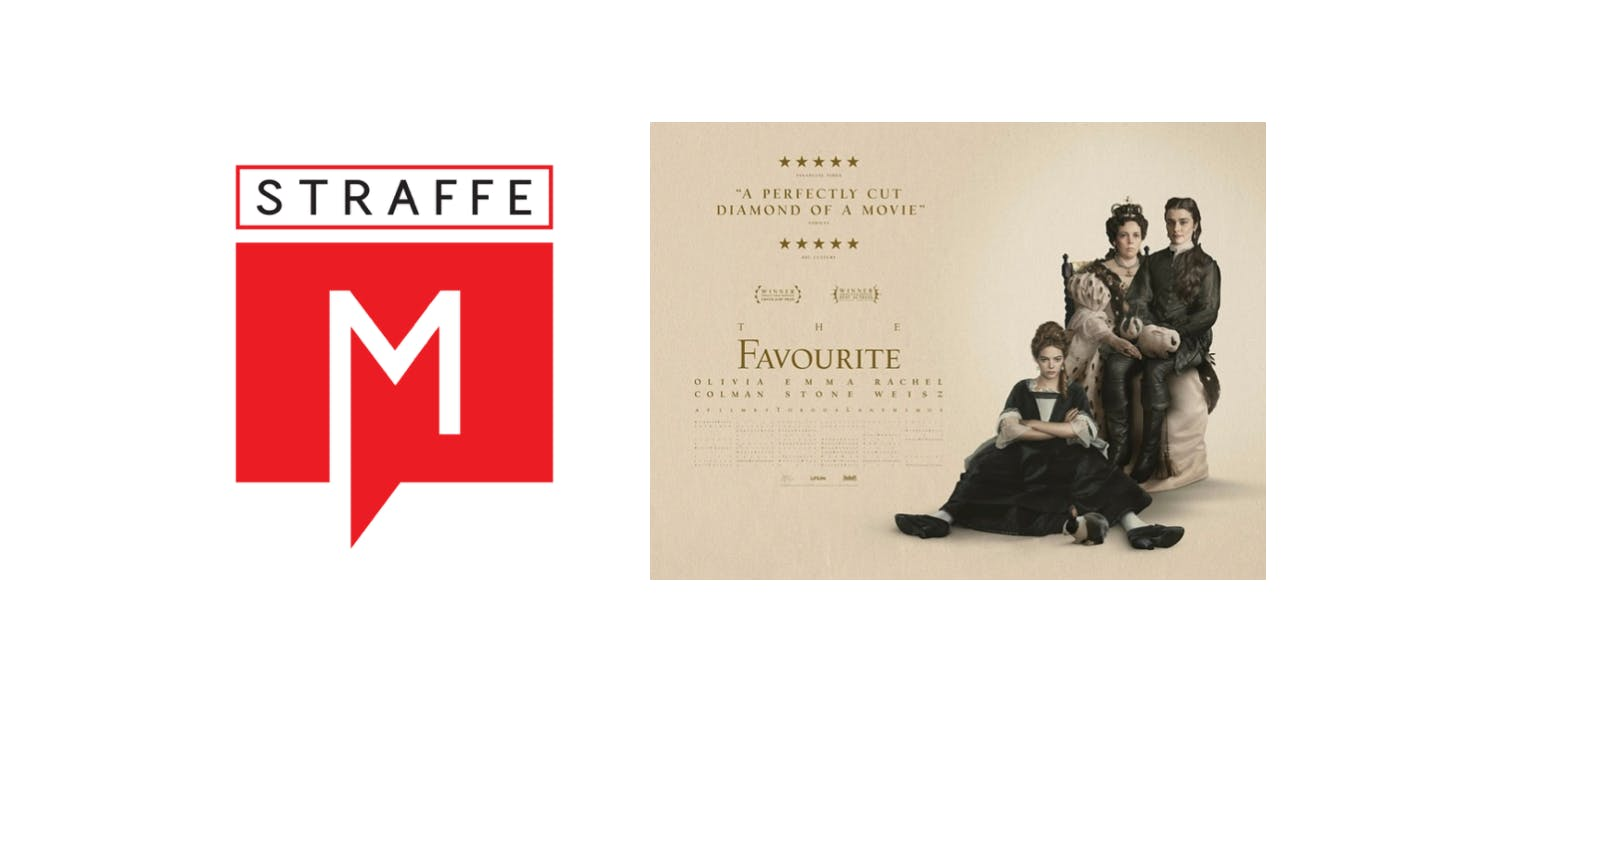 #StraffeM at the movies - The Favourite met E